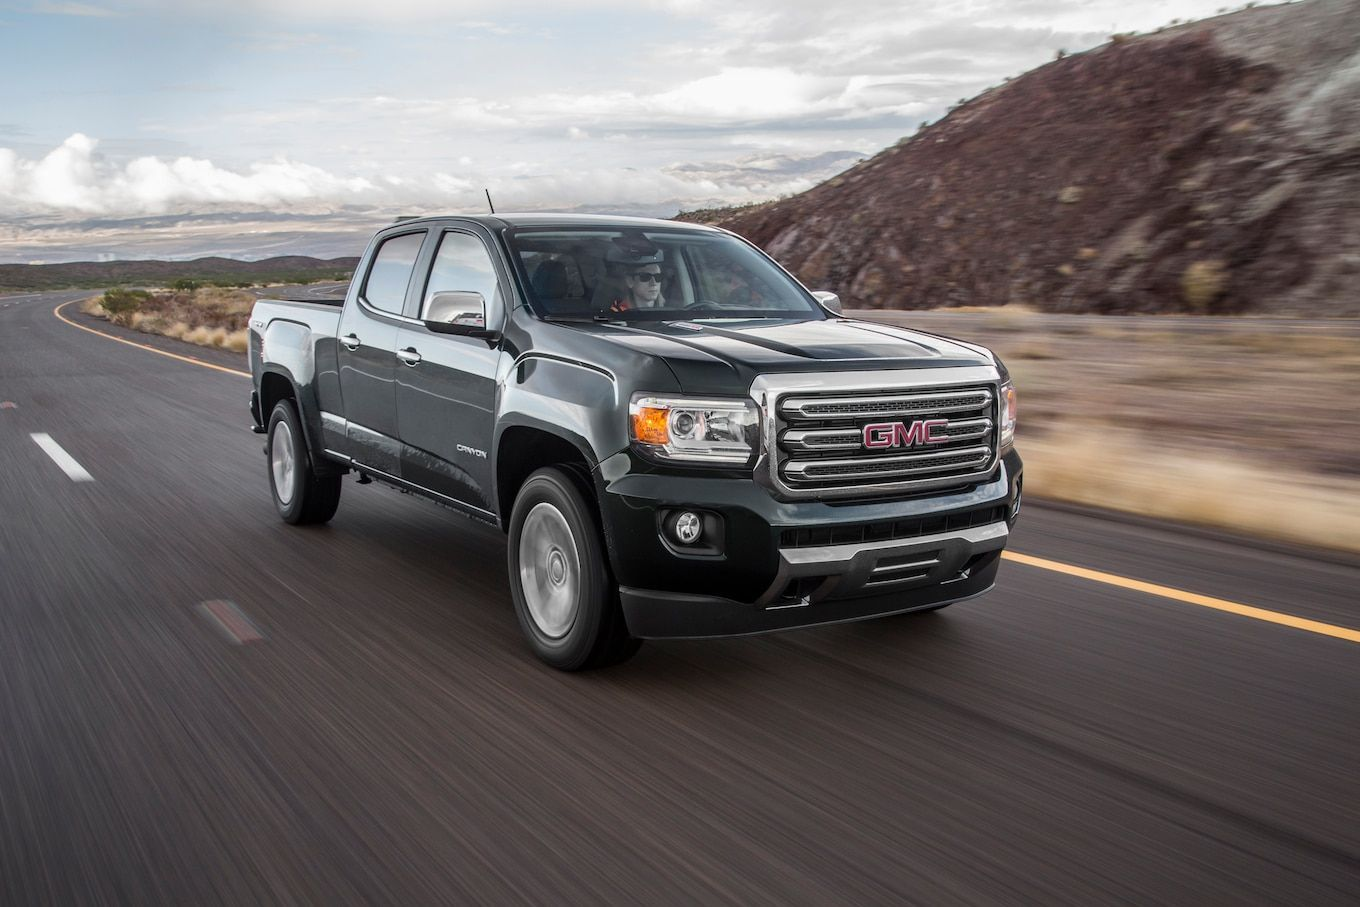 Explore 2020 Gmc Canyon Diesel Performance And Technology Features We Reviews The 2020 Gmc Canyon Diesel Release Where Consumers Gmc Canyon Canyon Diesel Gmc